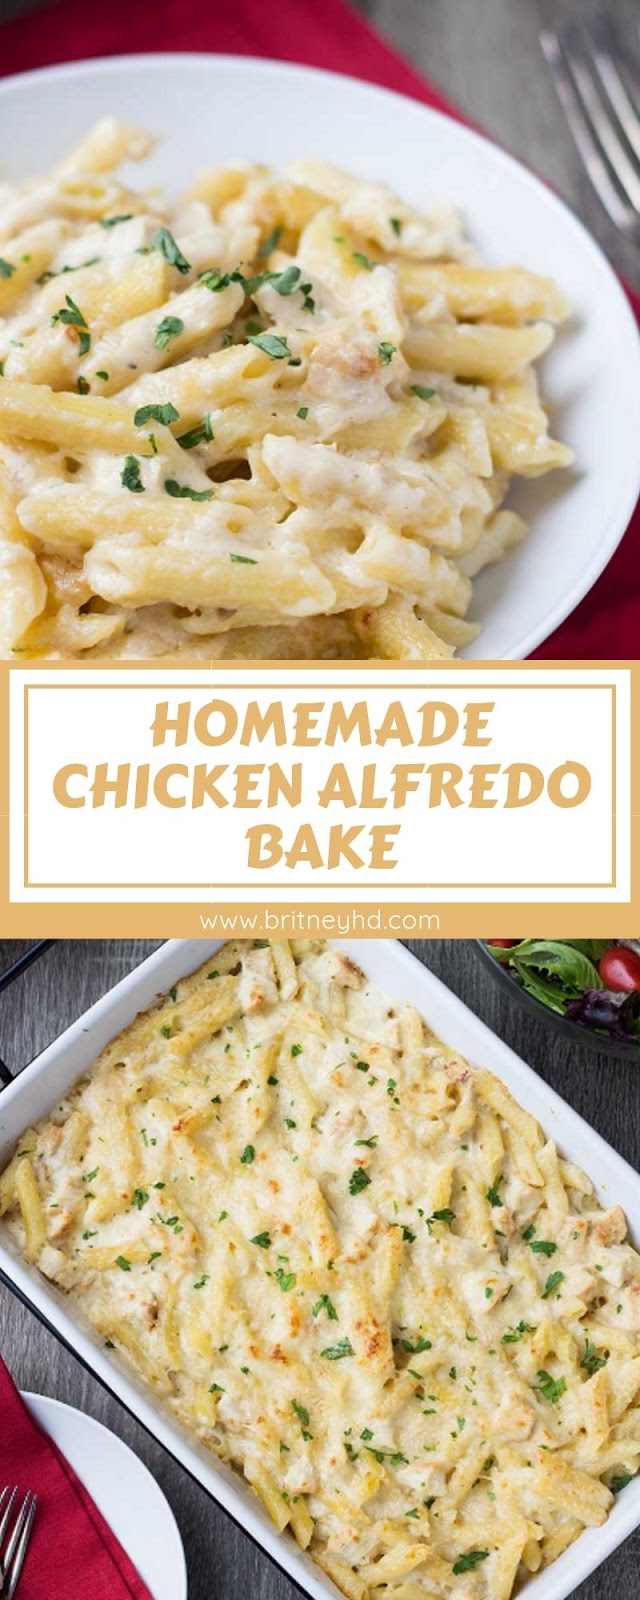 HOMEMADE CHICKEN ALFREDO BAKE